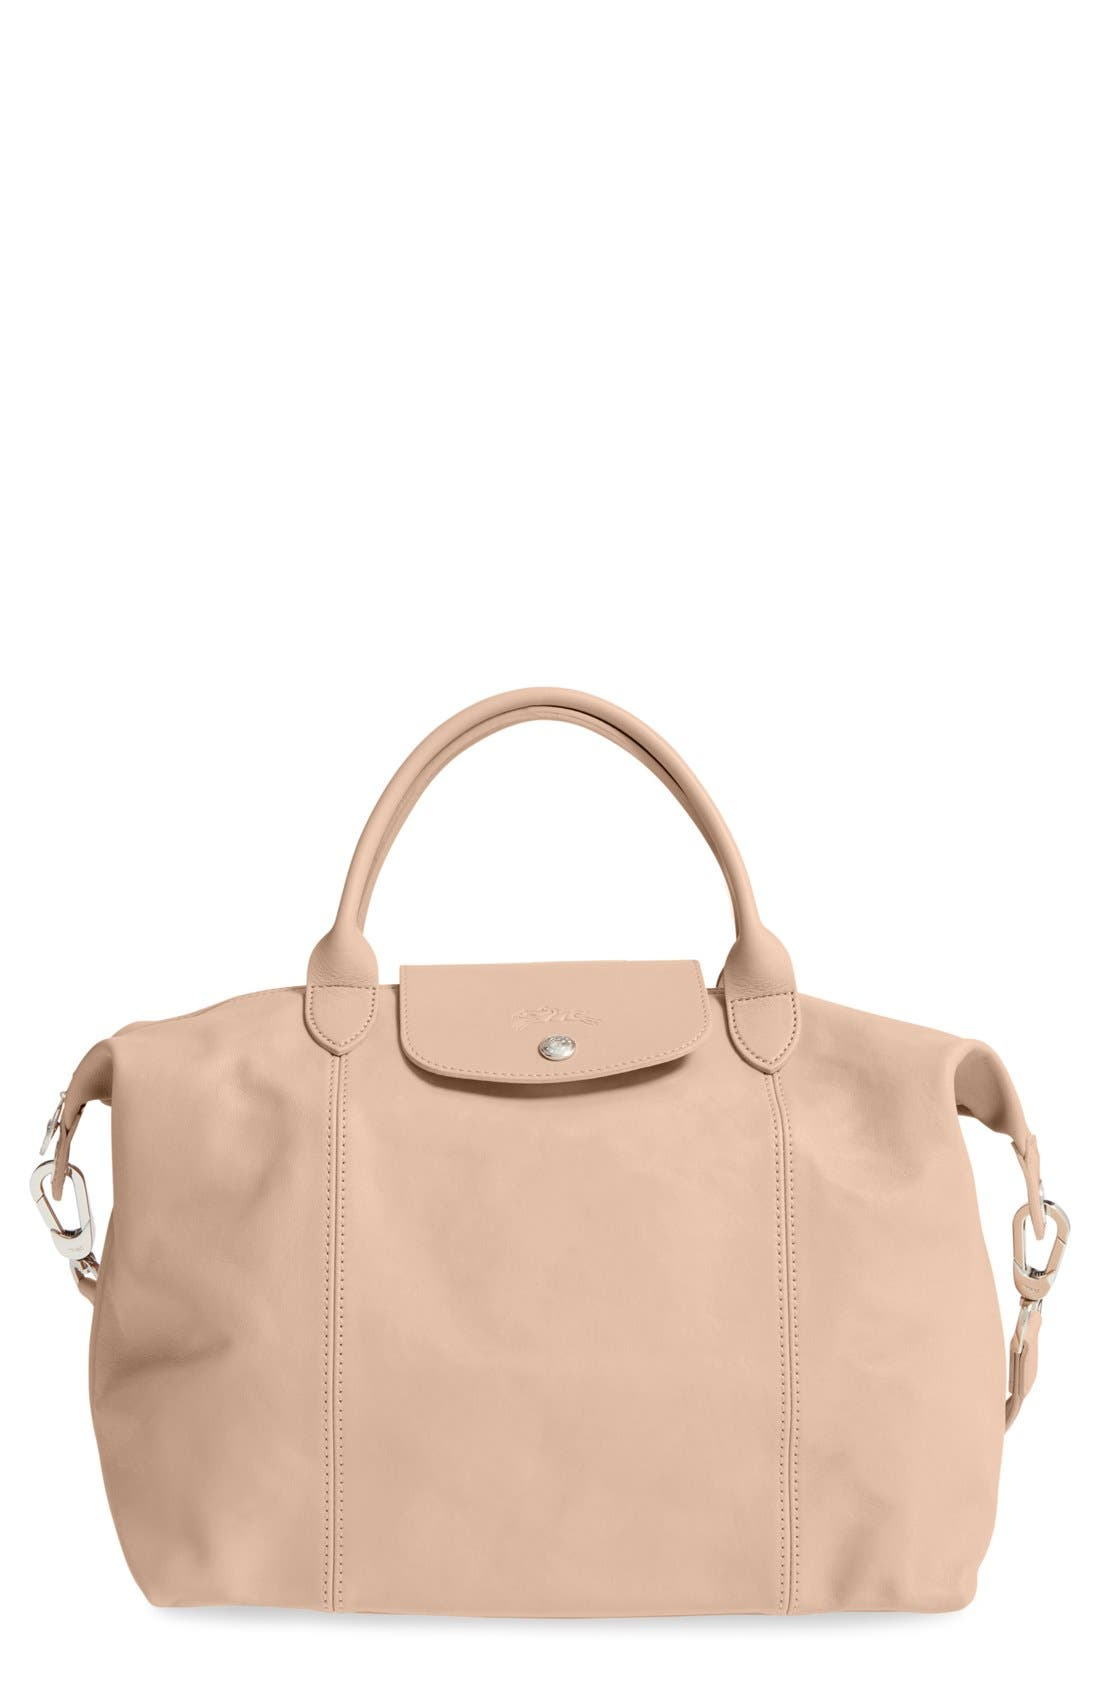 Medium 'Le Pliage Cuir' Leather Top Handle Tote,                             Main thumbnail 6, color,